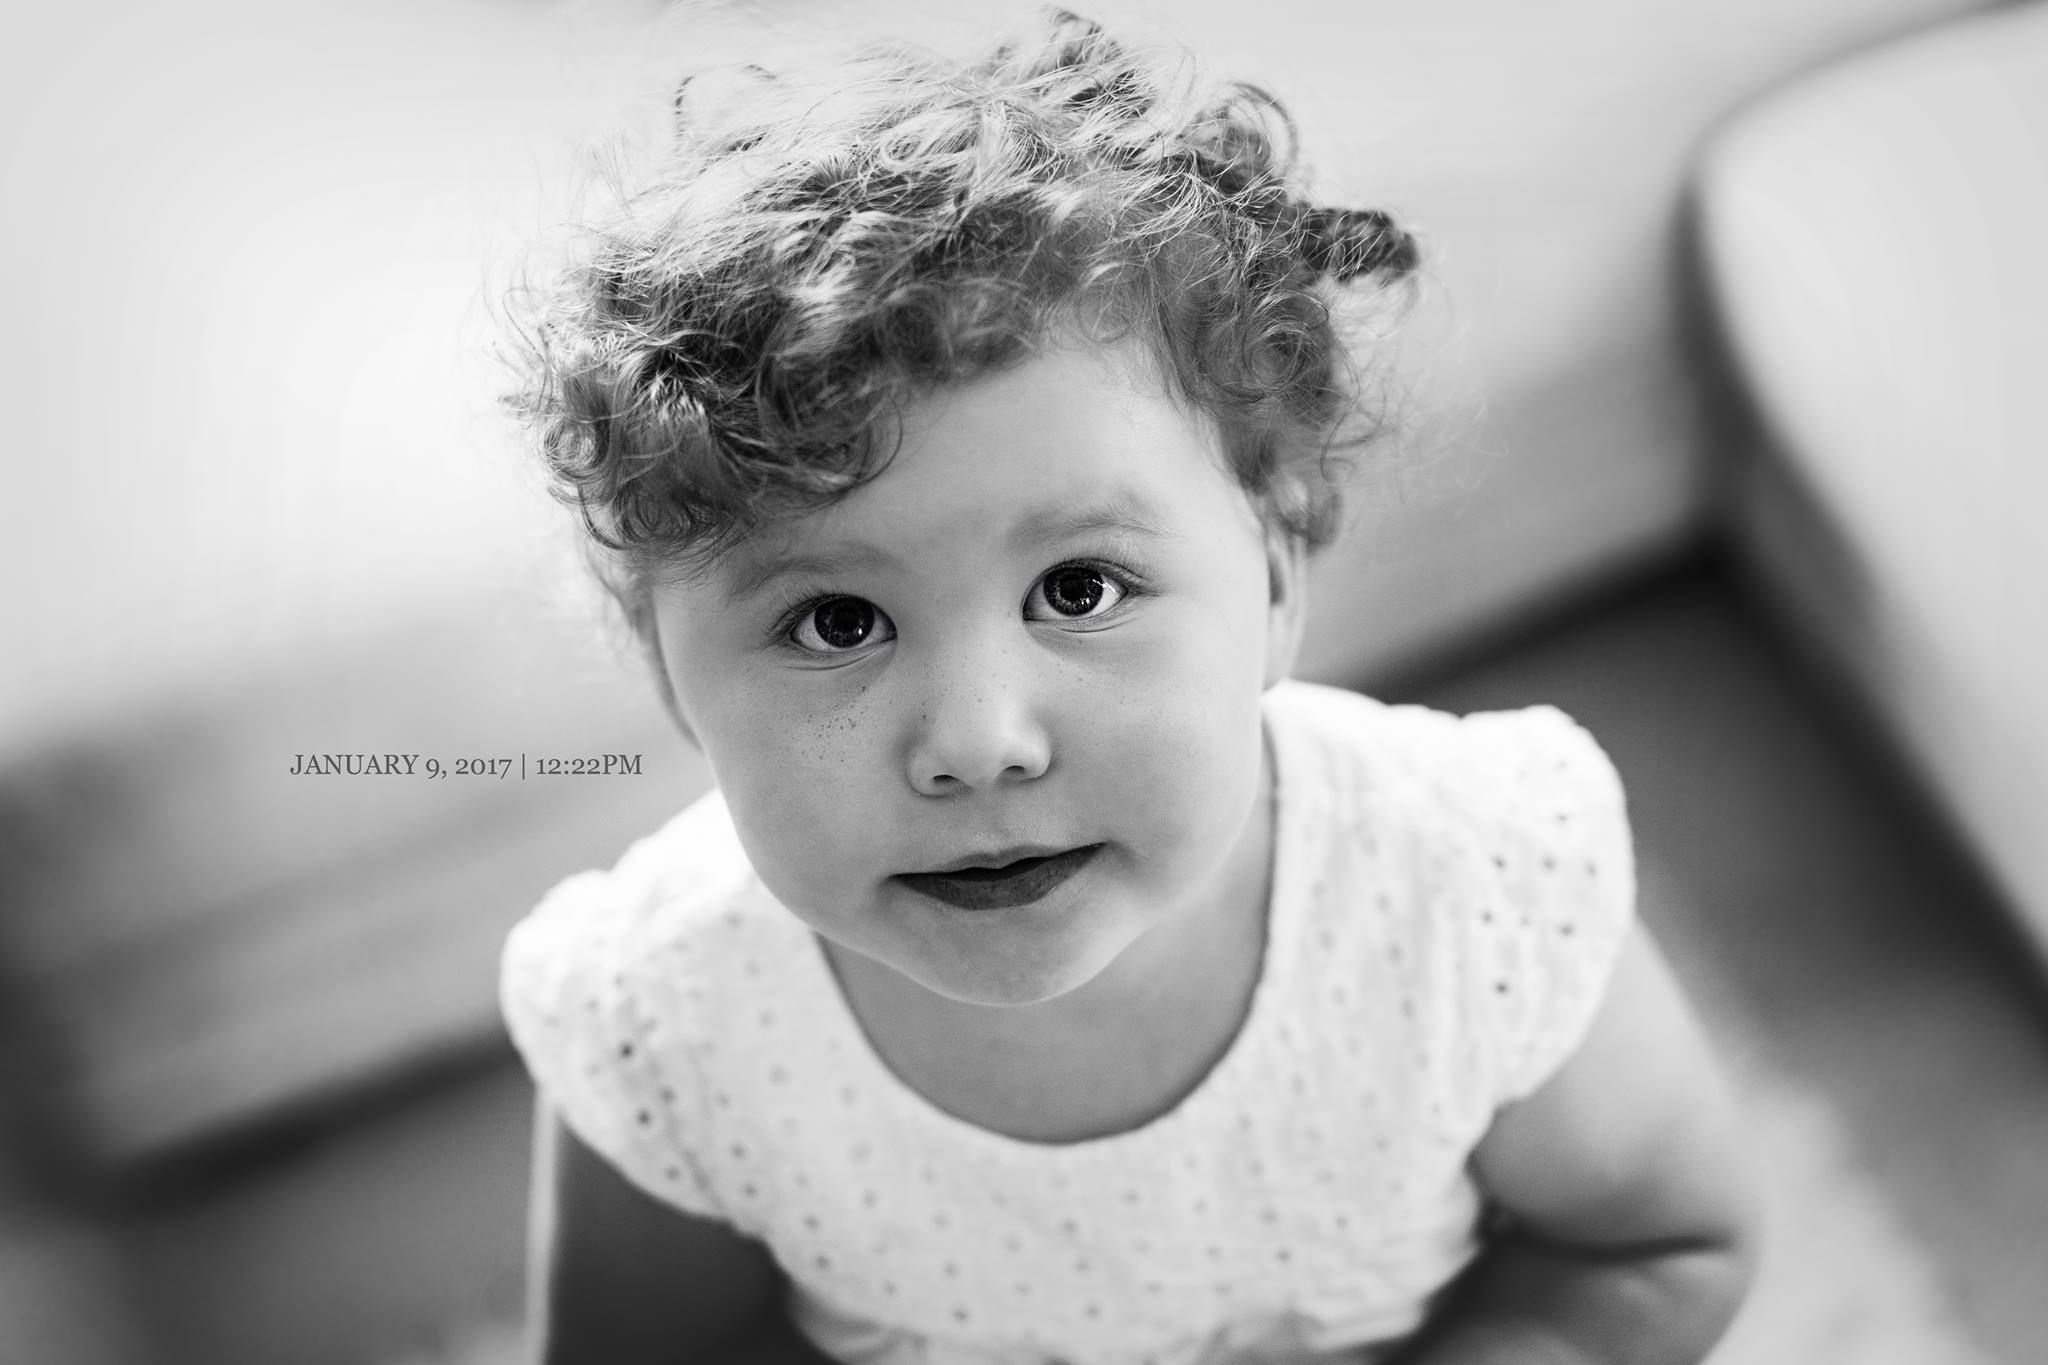 DAY NINE Miss Hazel. My first. You are determined. You are kind. Clever. And love to dance. Your heart is big. With so much love to share. Today I saw change in you. Here you were. Not my little baby anymore. But a young girl. Ready to be a big sister.